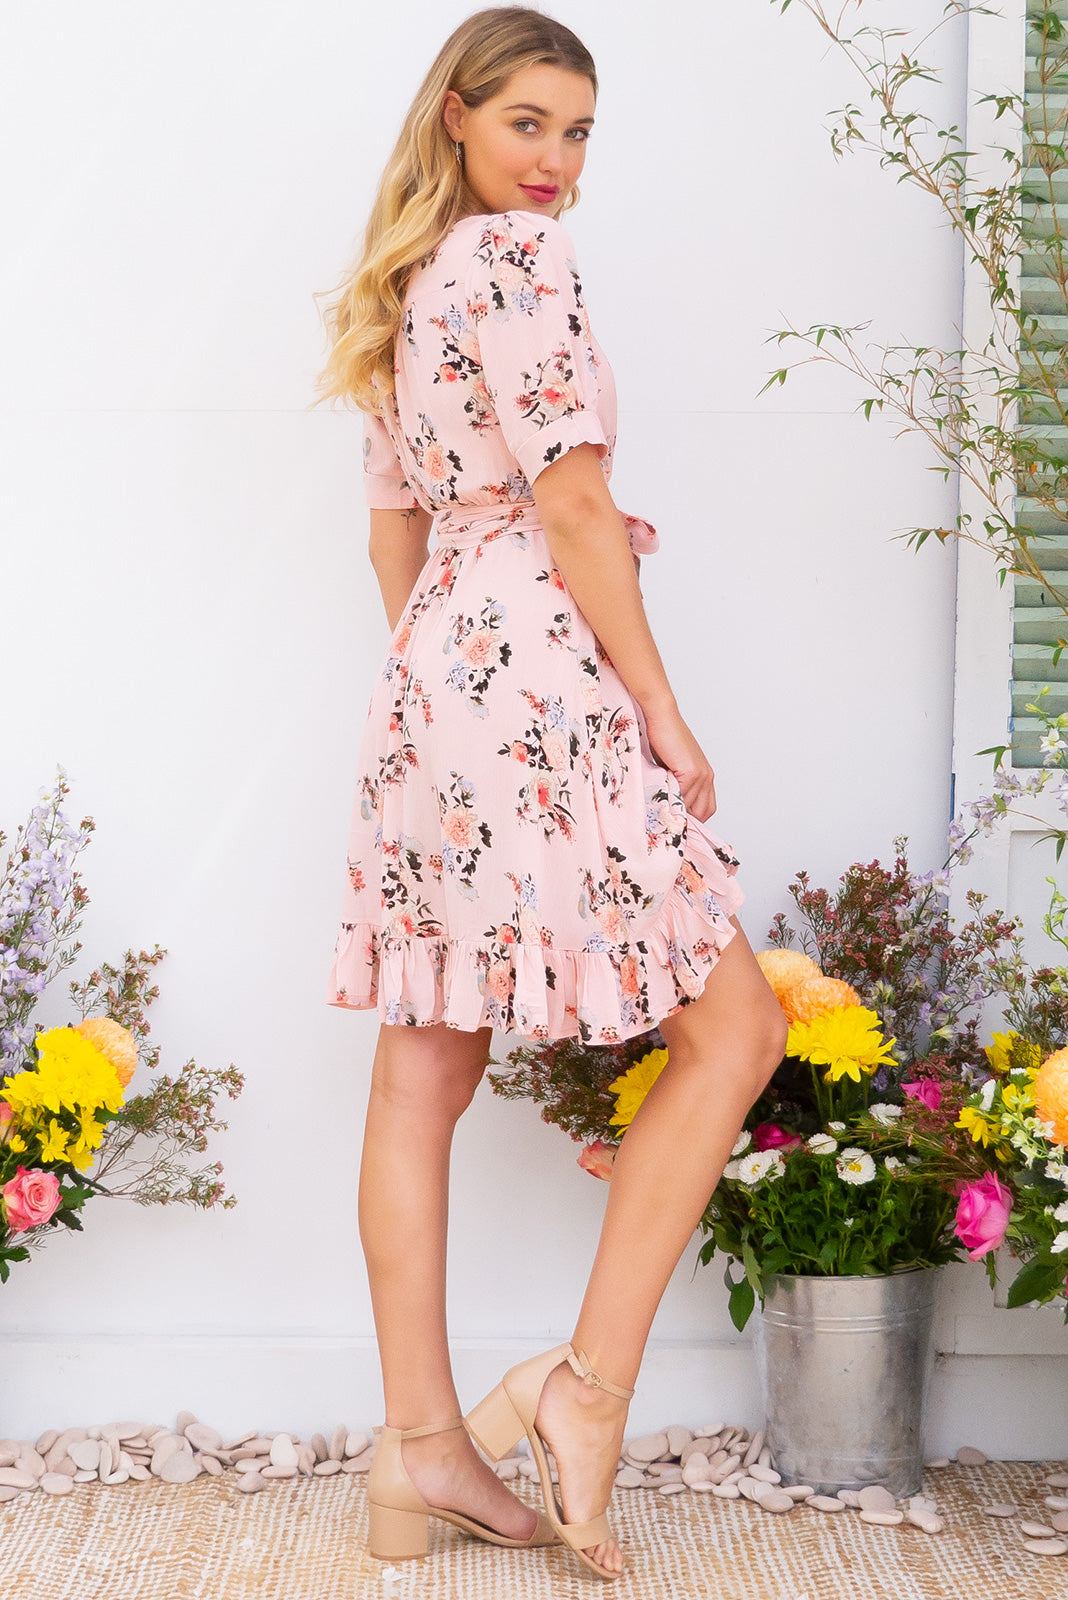 Antigua Pink Le Park Maxi Wrap Dress in a 1940's inspired style with cuffed midi sleeves and a delicate hemline frill in a rose petal pink bouquet floral print on crinkle woven rayon